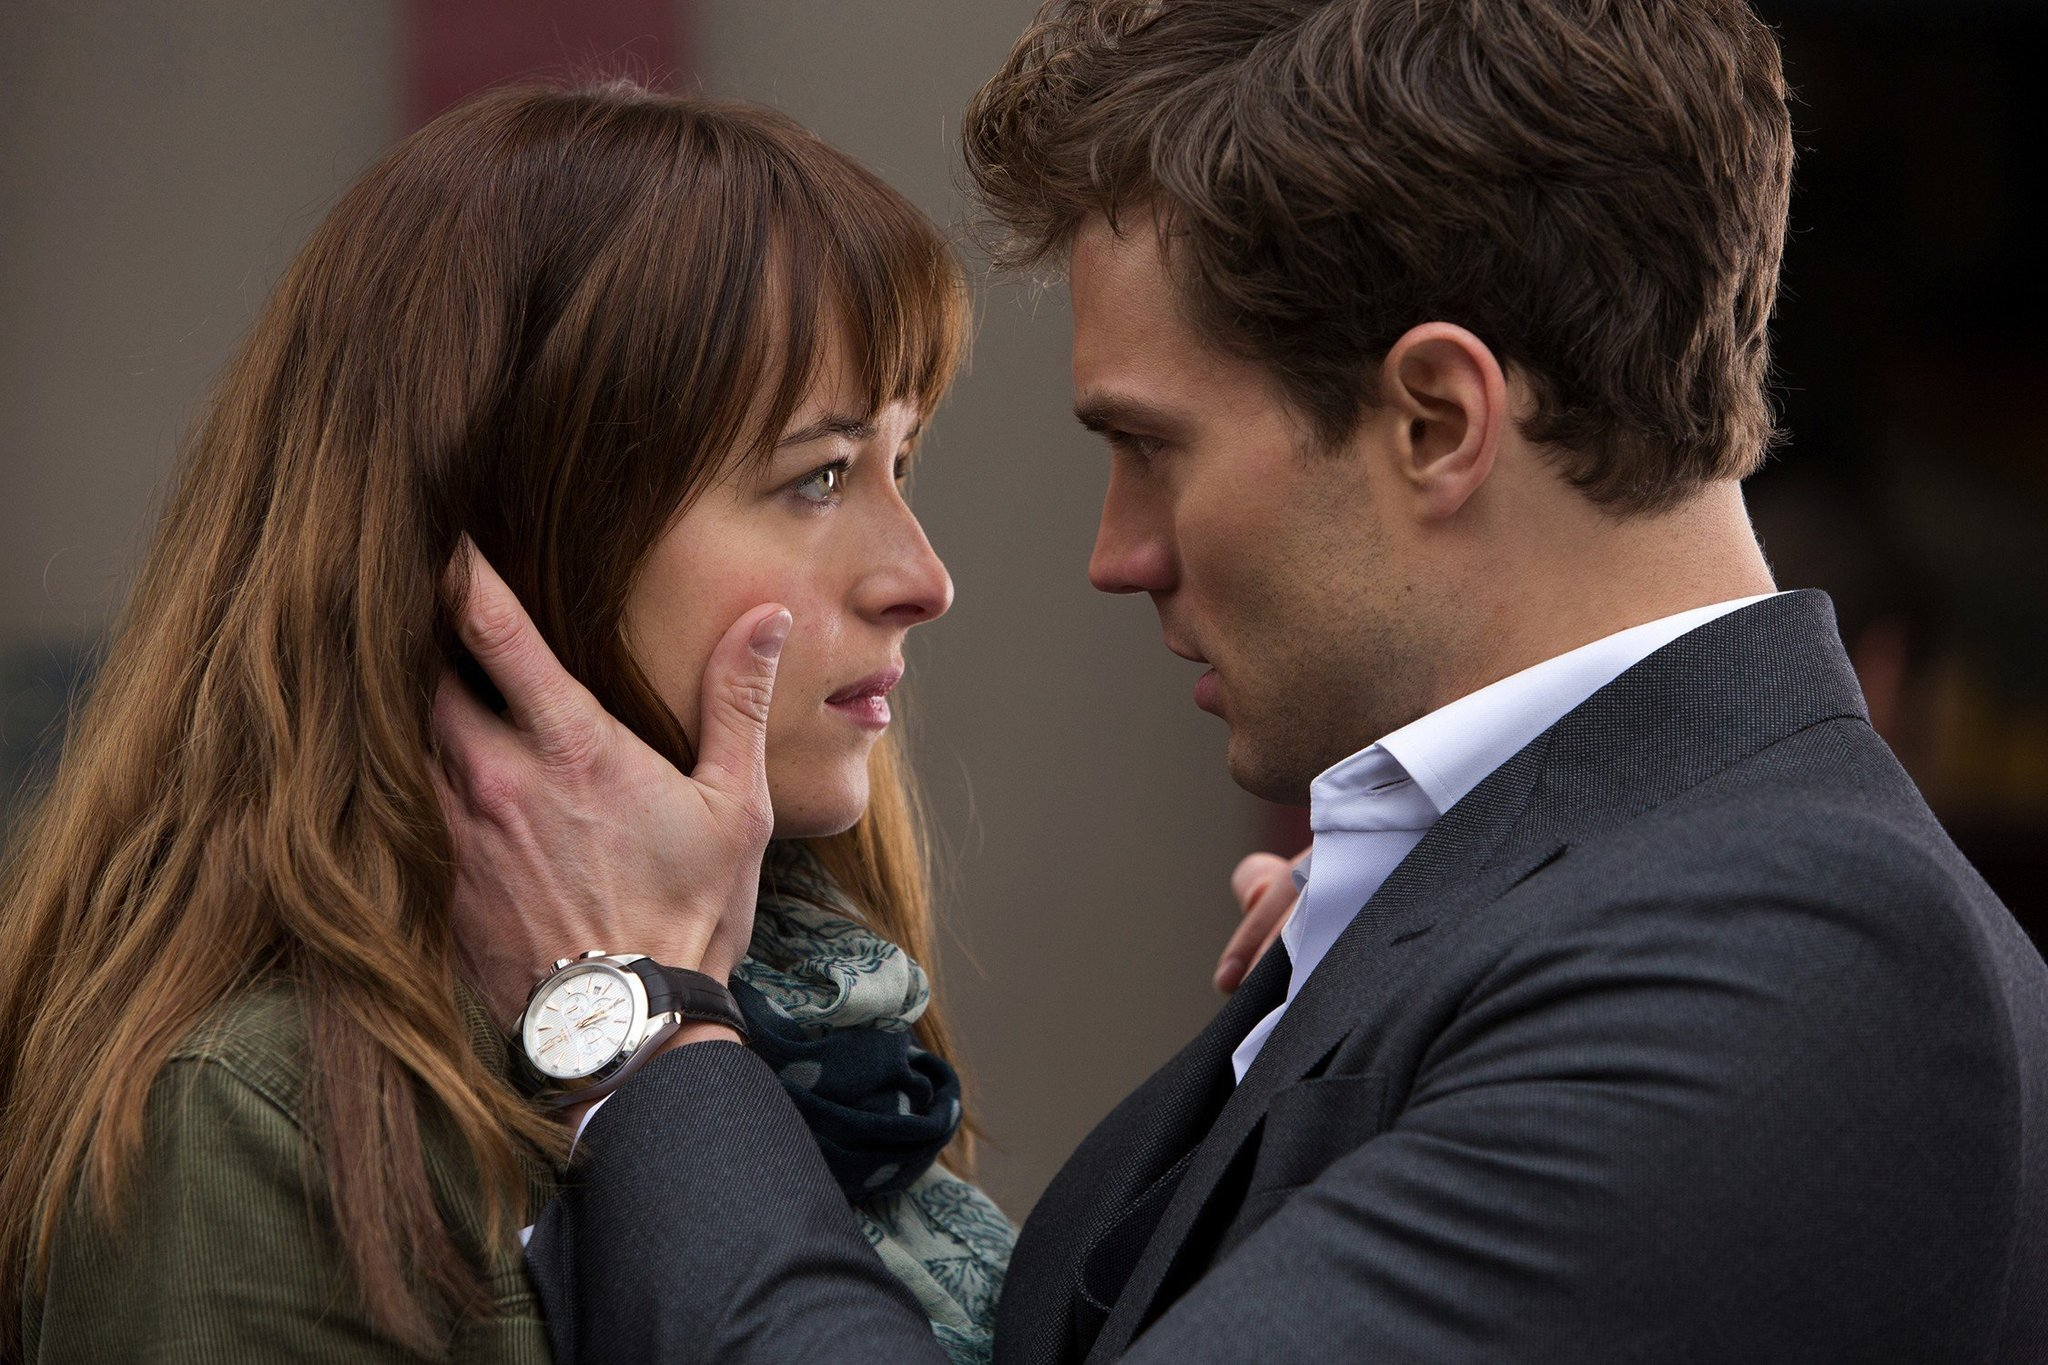 39 fifty shades of grey 39 leading ticket sales on fandango for The fifty shades of grey